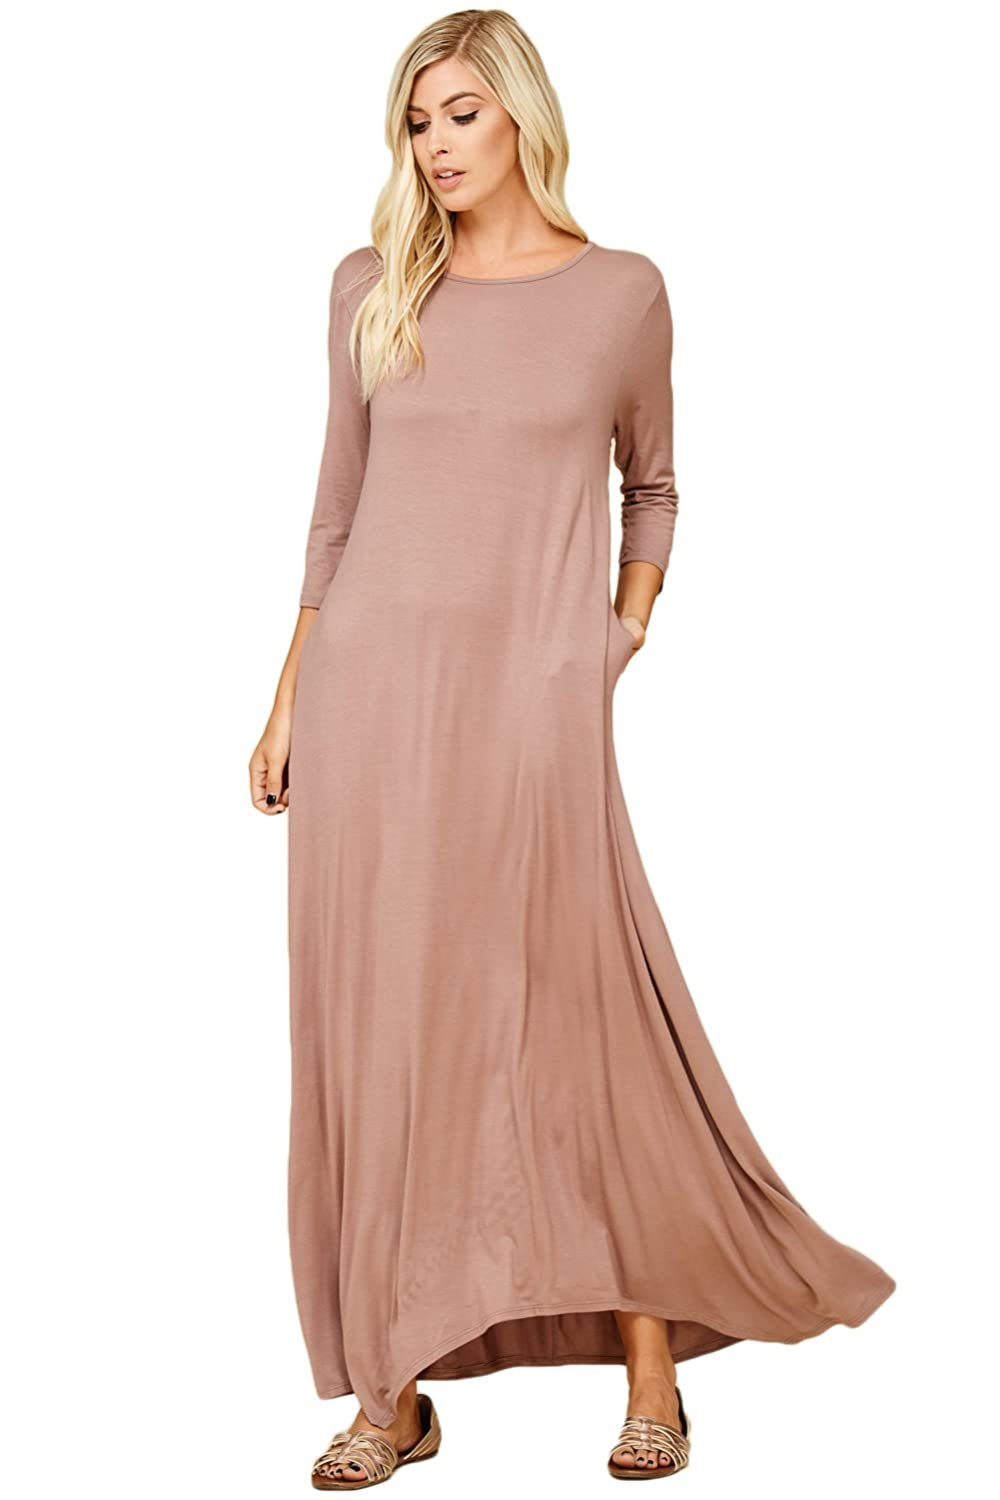 f0e9cbf83b5 Annabelle Women s 3 4 Sleeve Casual Loose Fit Maxi Dresses with Side  Pockets at Amazon Women s Clothing store